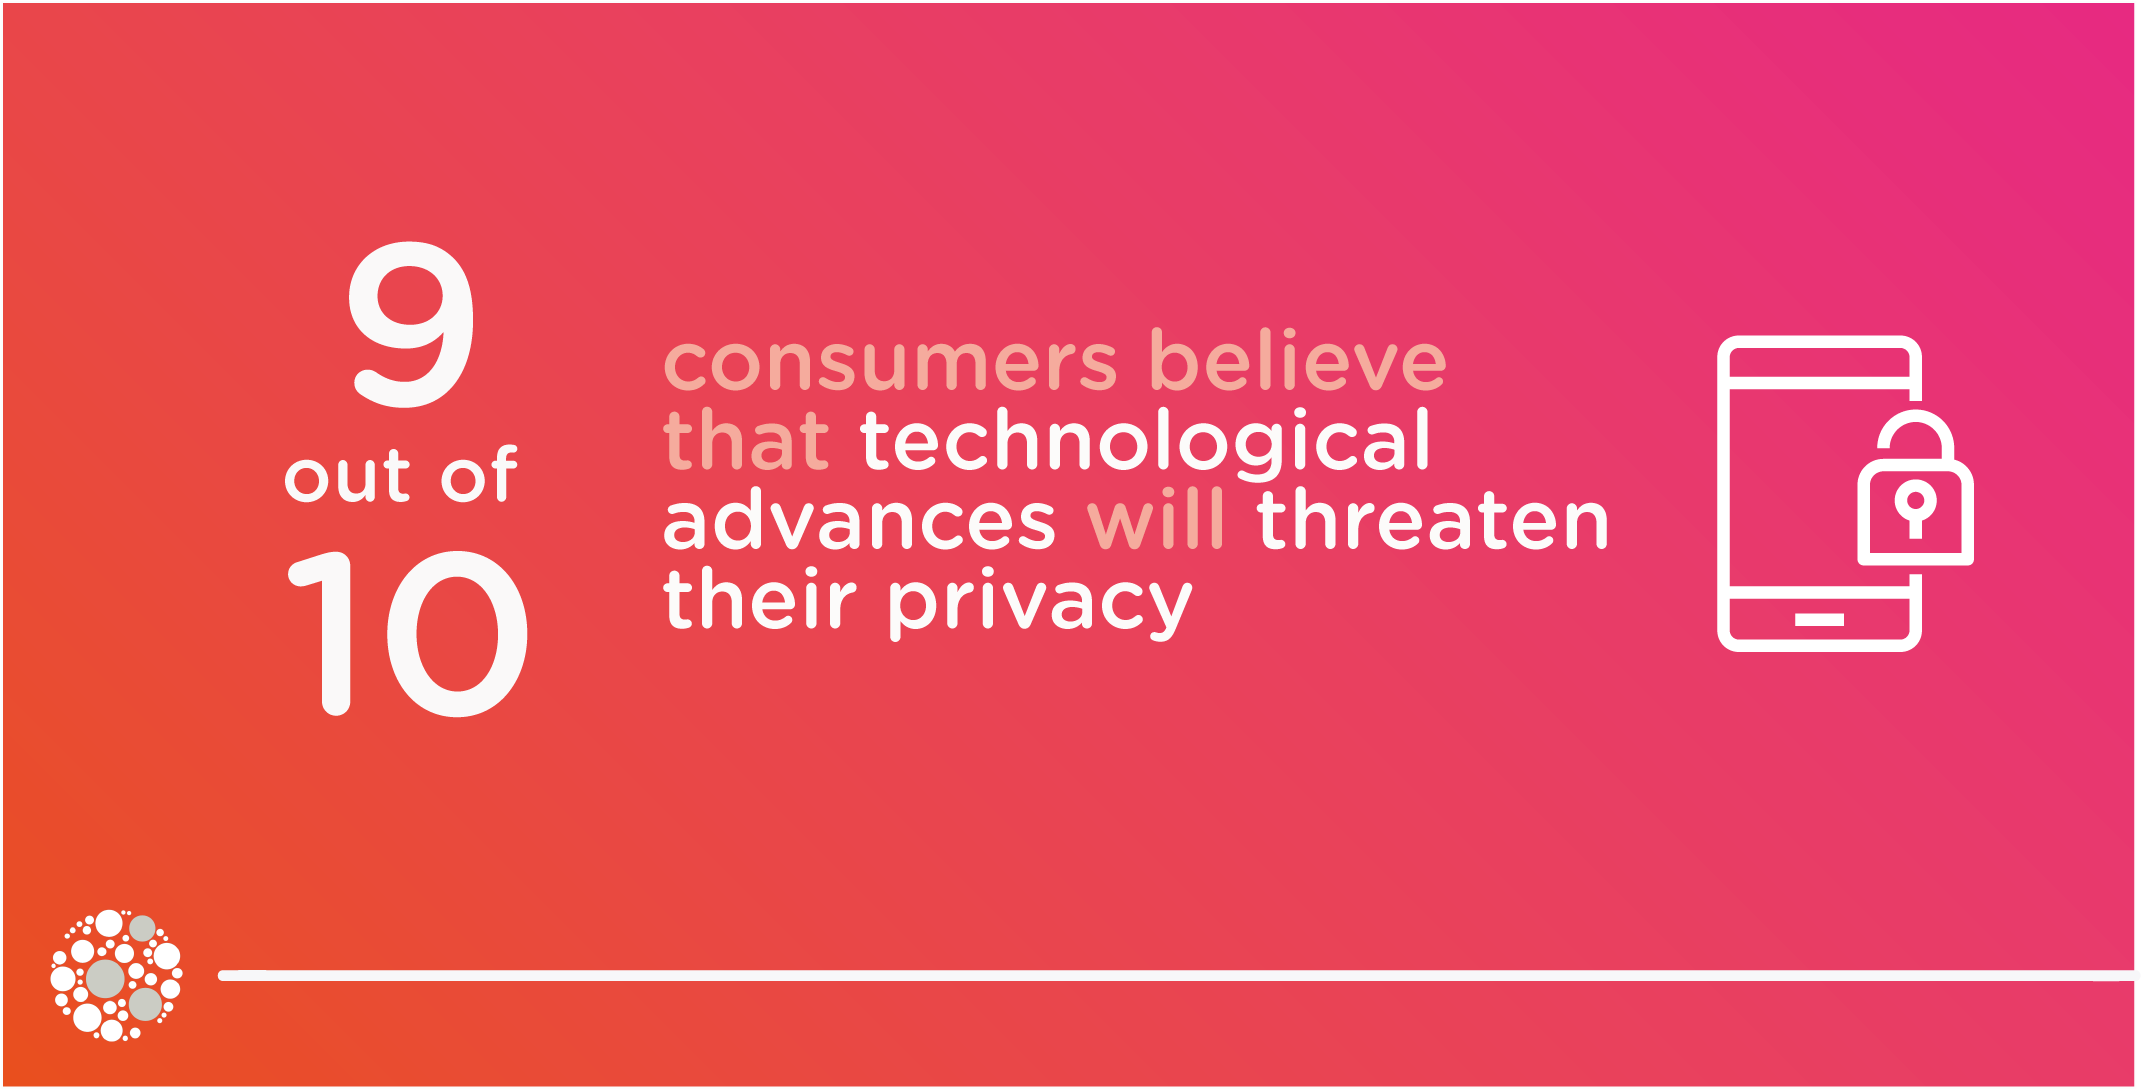 90% of consumers believe technological advances threaten their data privacy